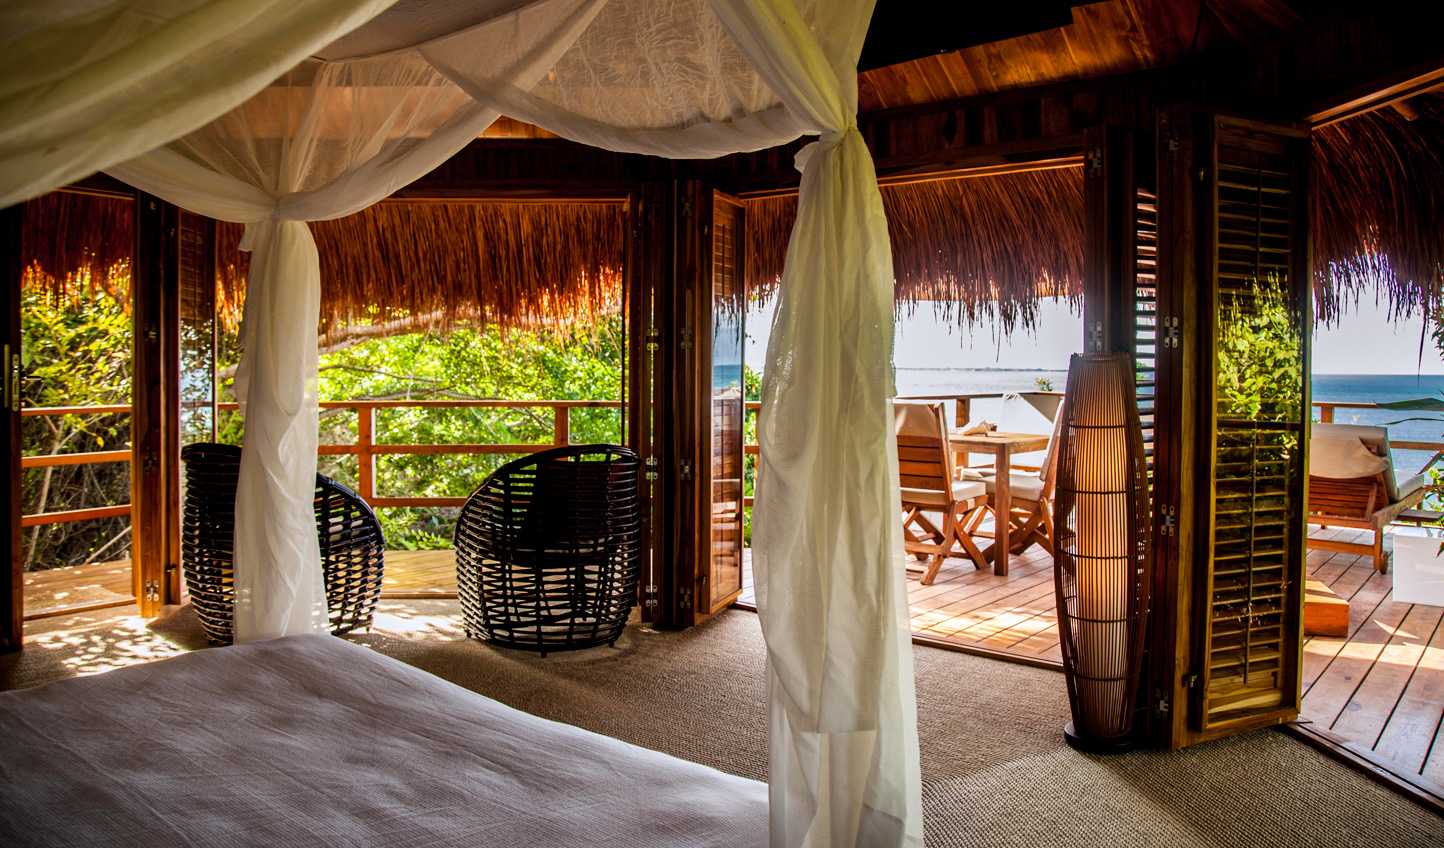 Wake up to  views across the jungle and over the sea